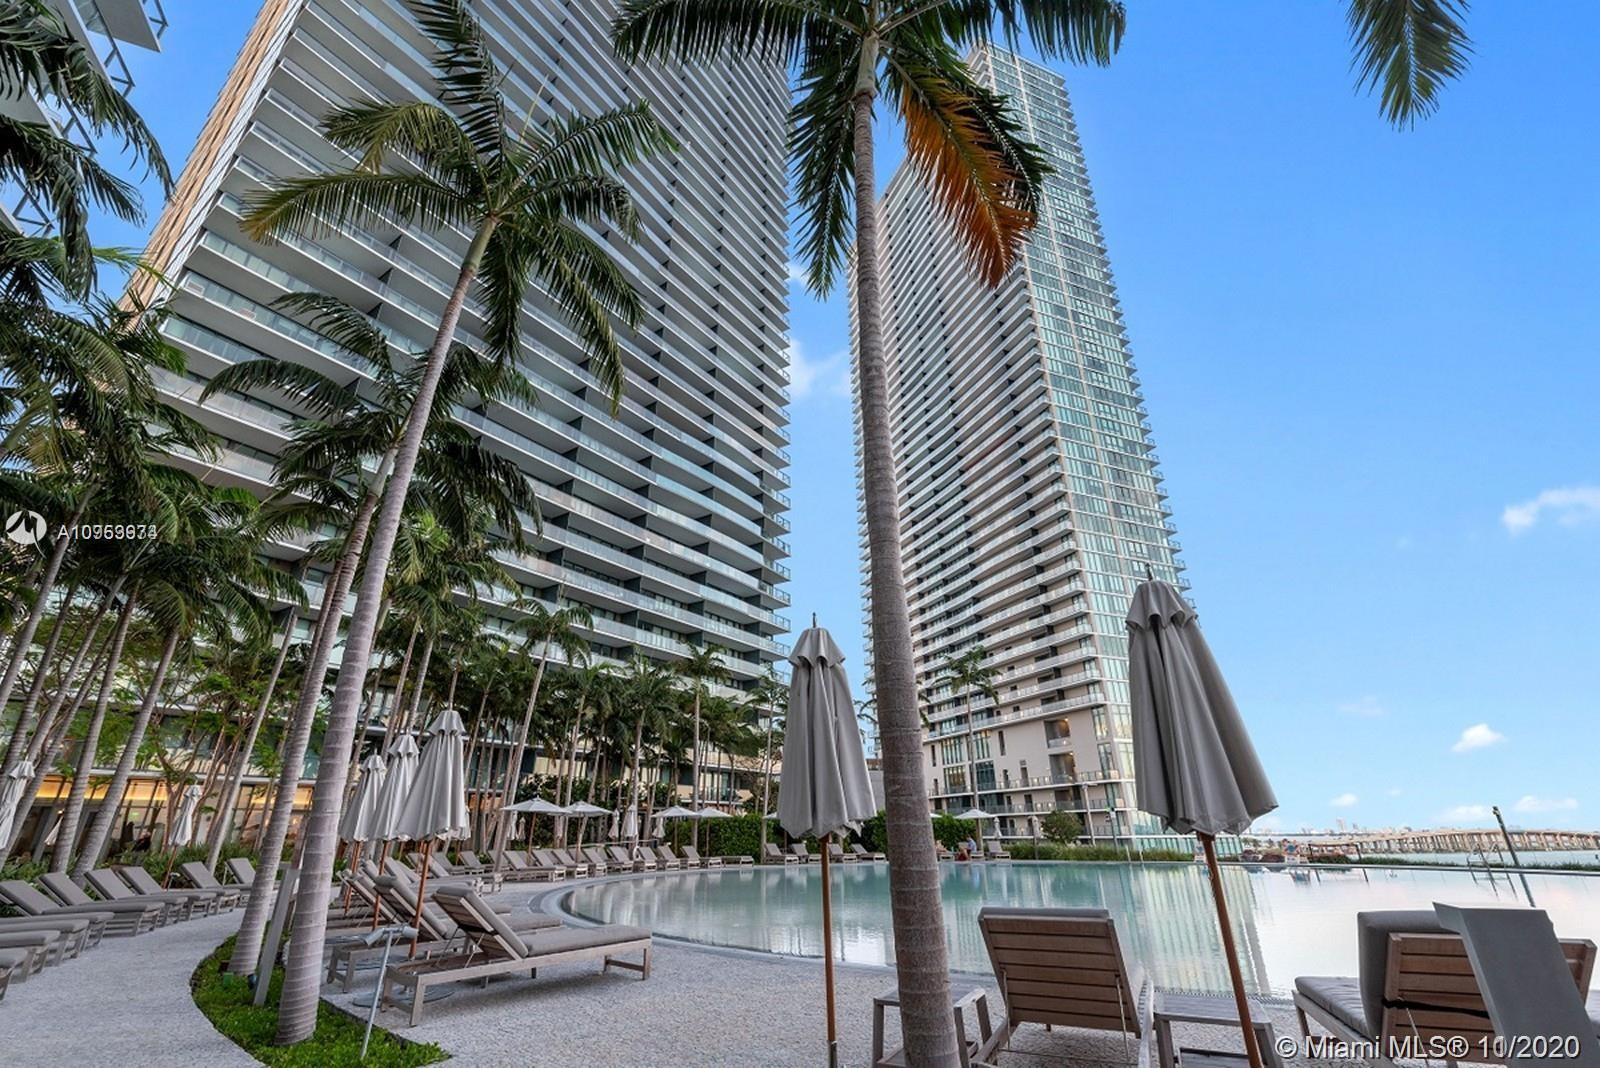 Amazing apt in a luxurious building,breathtaking views of the bay,2 private elevators in 2different,